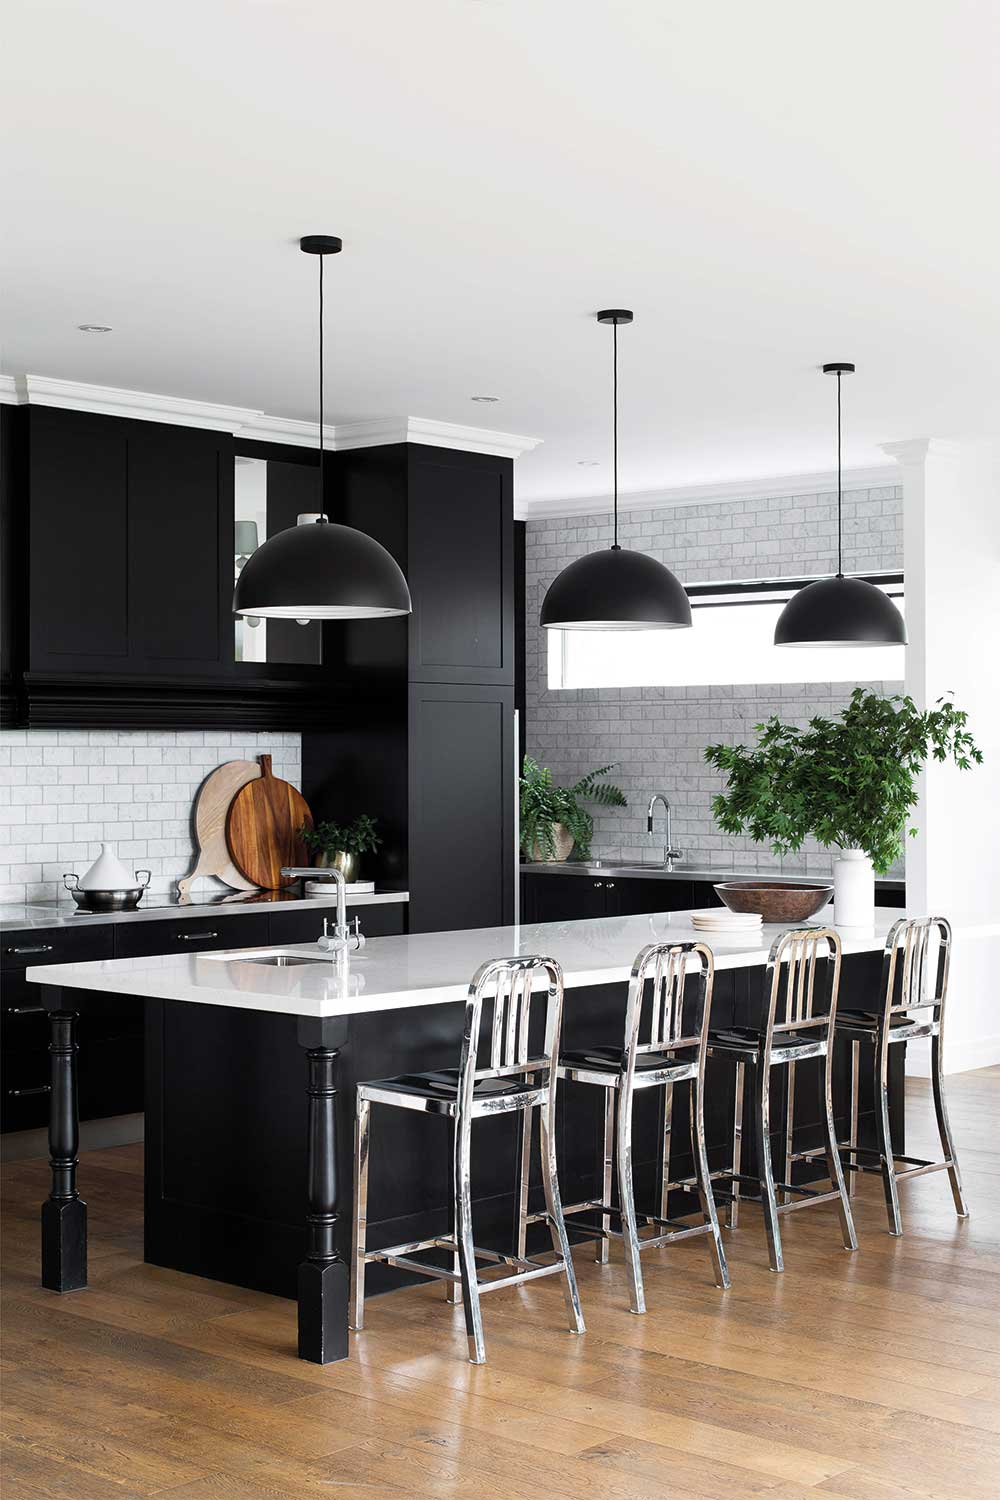 Home Beautiful & 7 great ideas for a black and white kitchen | Home Beautiful ...